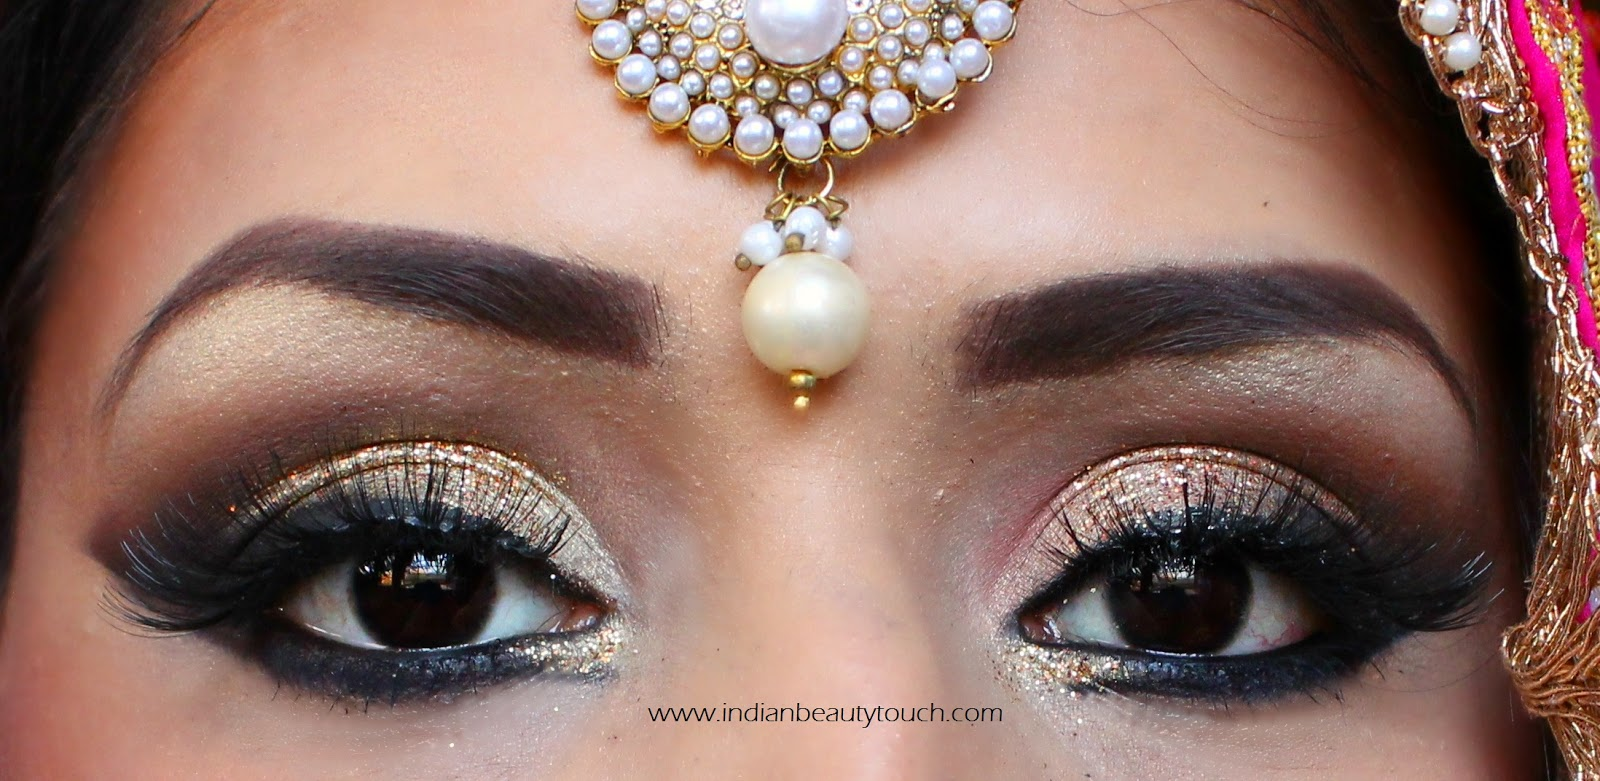 How to do Indian Bridal Eye Makeup - Indian Beauty Touch